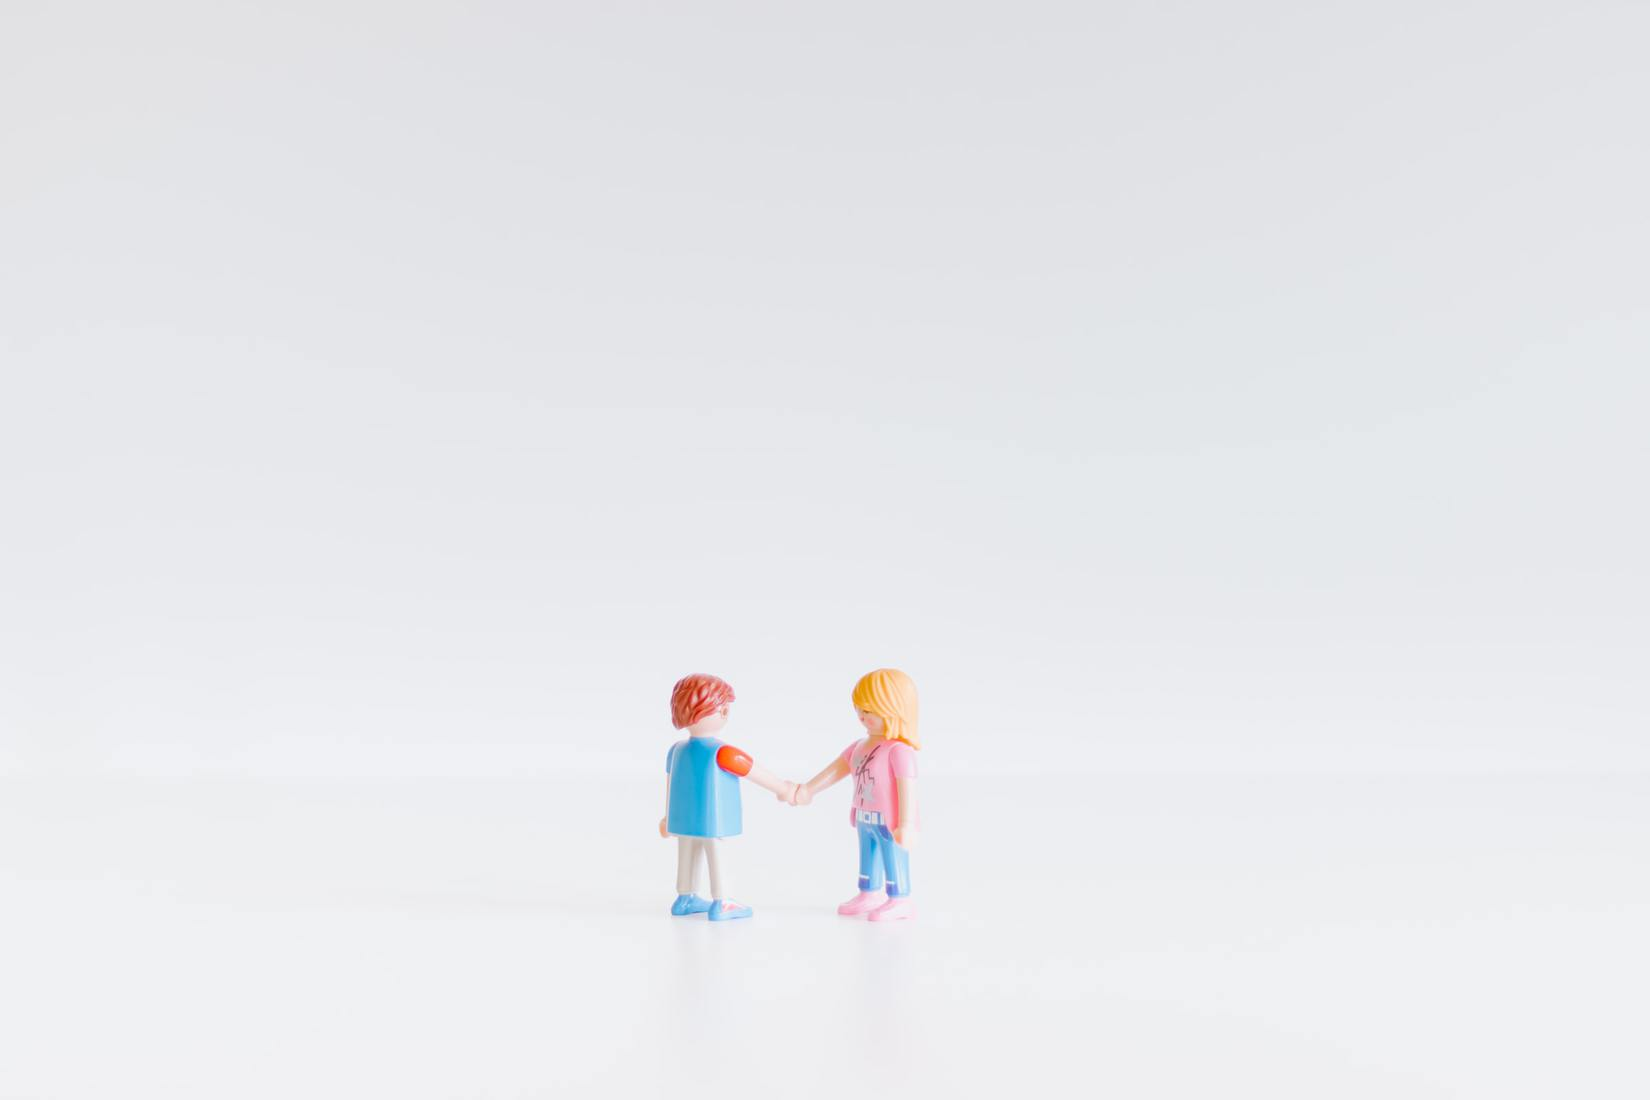 Plastic figures shaking hands